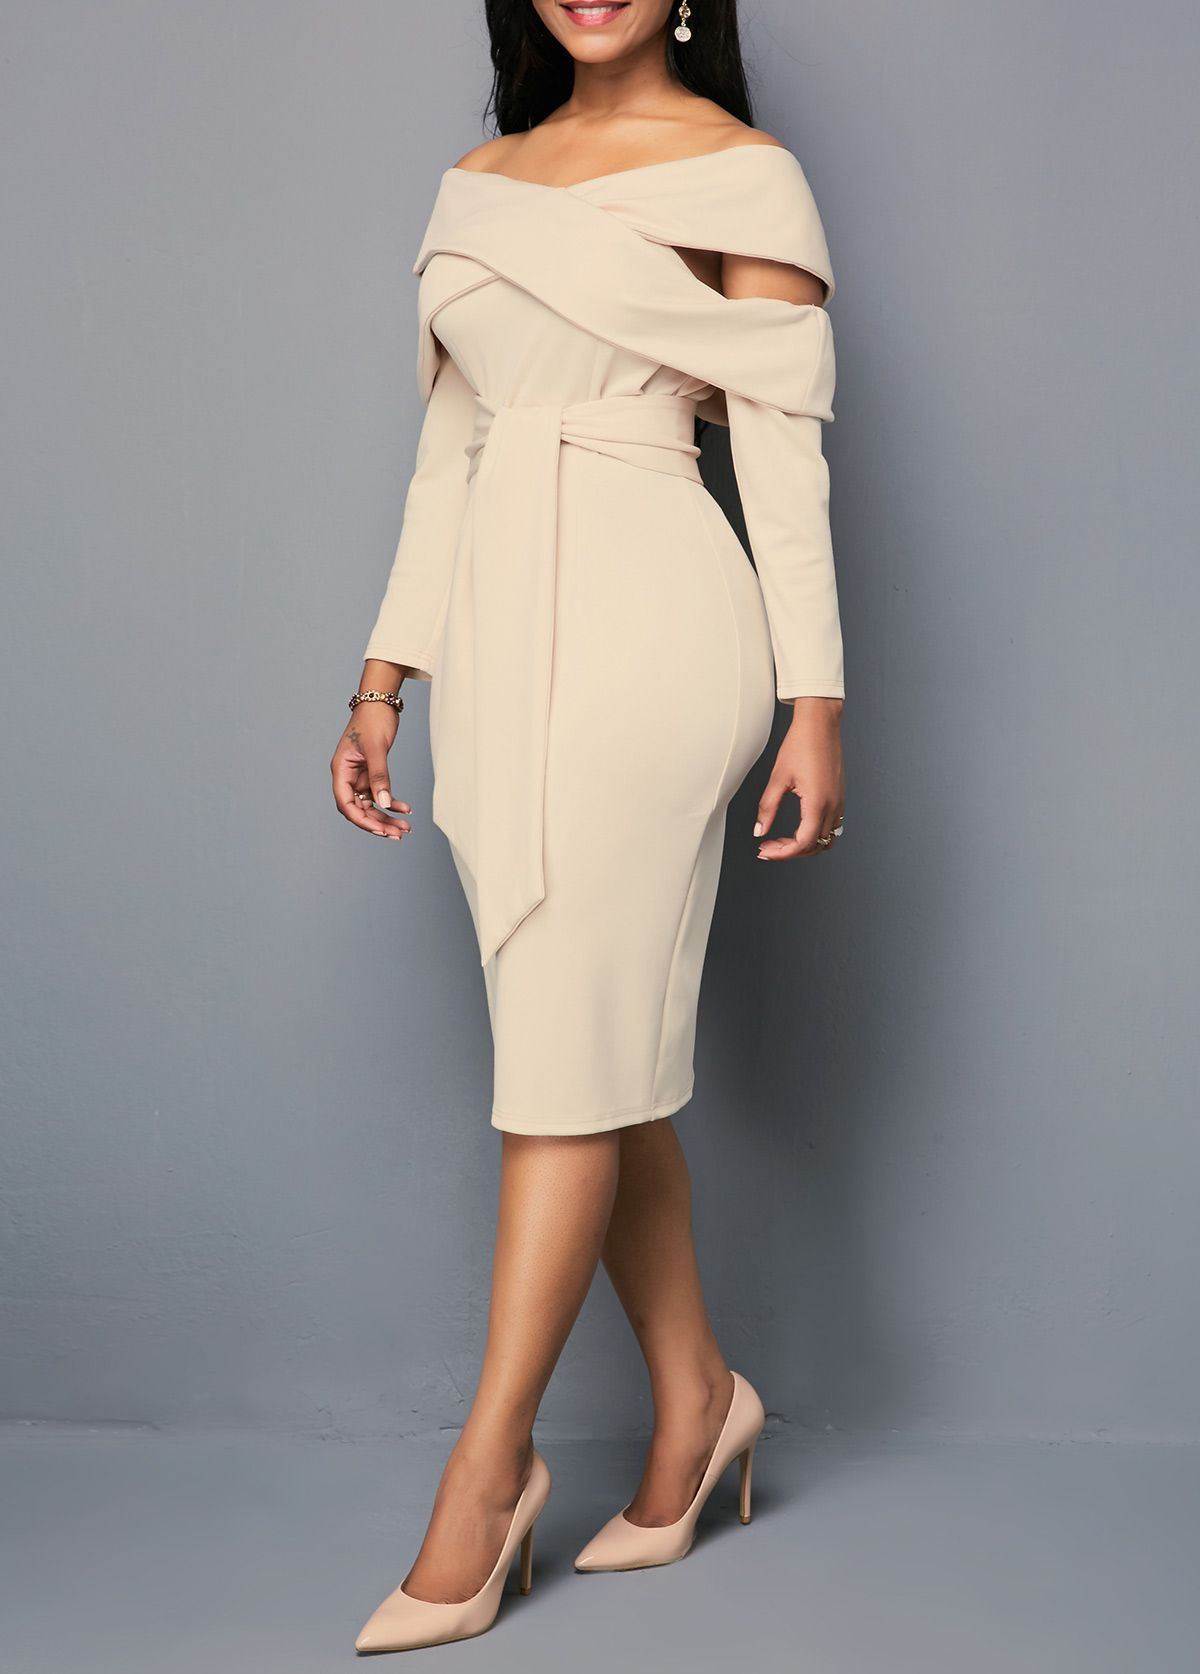 Off the shoulder zipper back sheath dress in a night on the